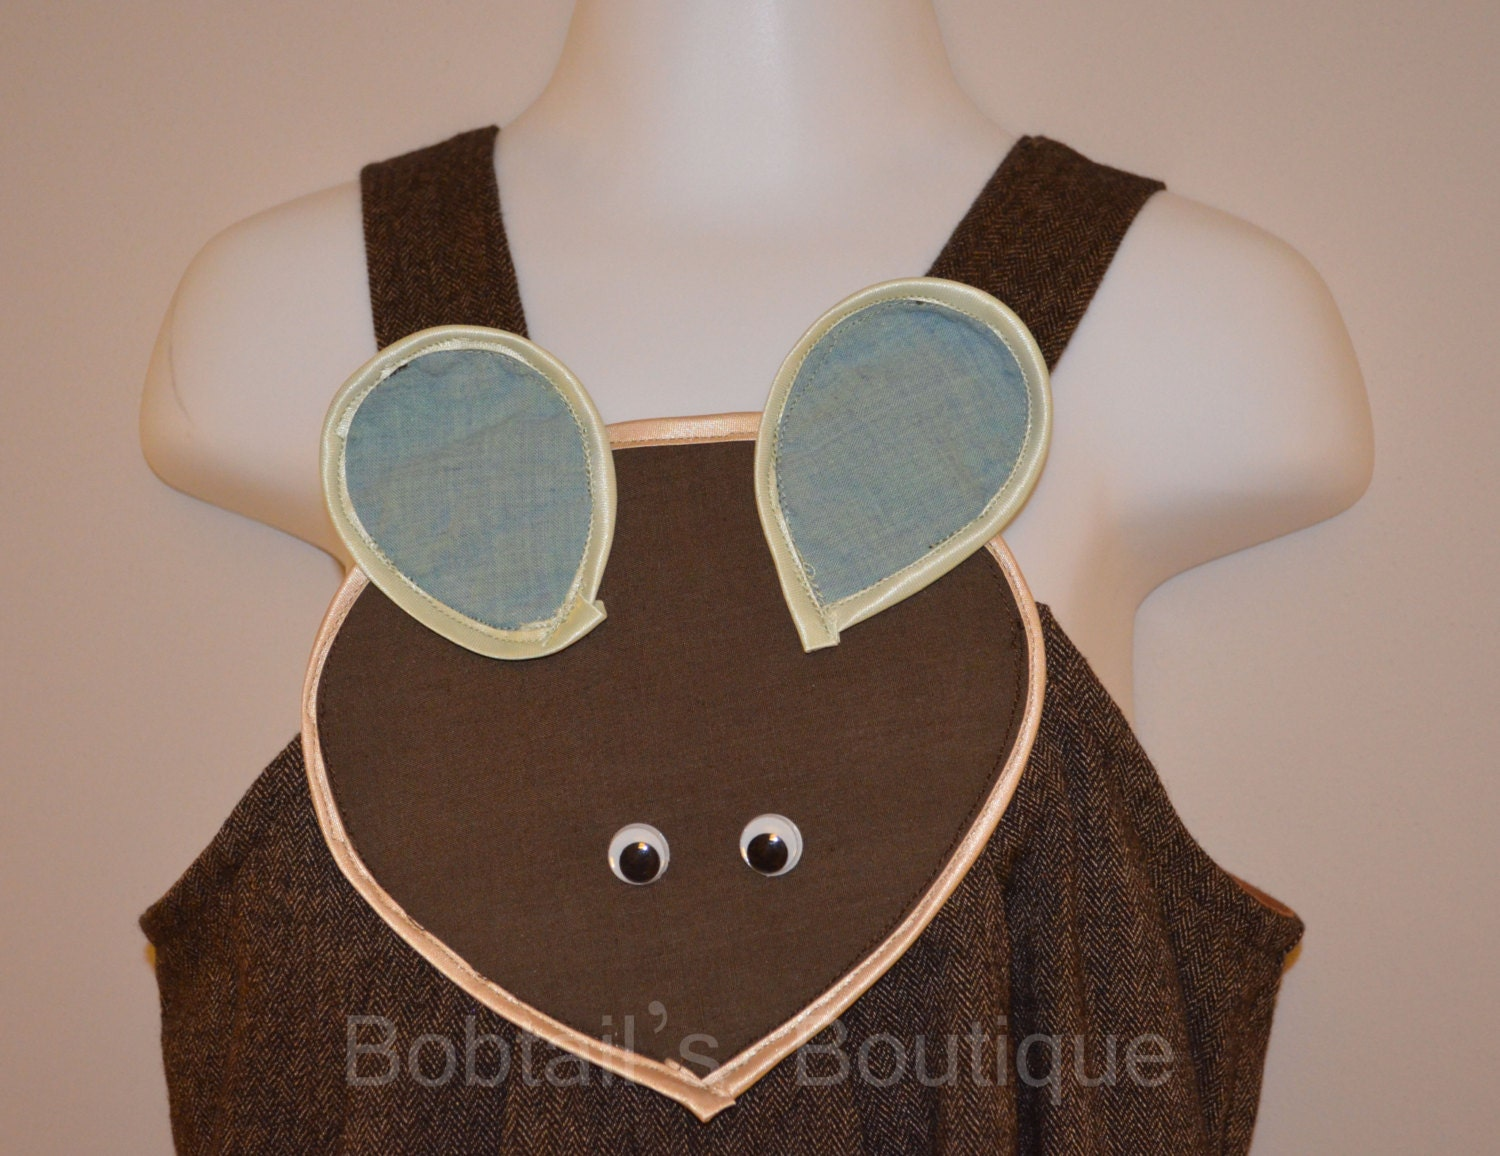 Toddler Boy Dungarees Toddler Girl Dungarees Toddler Dungarees Childs Dungarees Little Mouse Dungarees Size 612 months